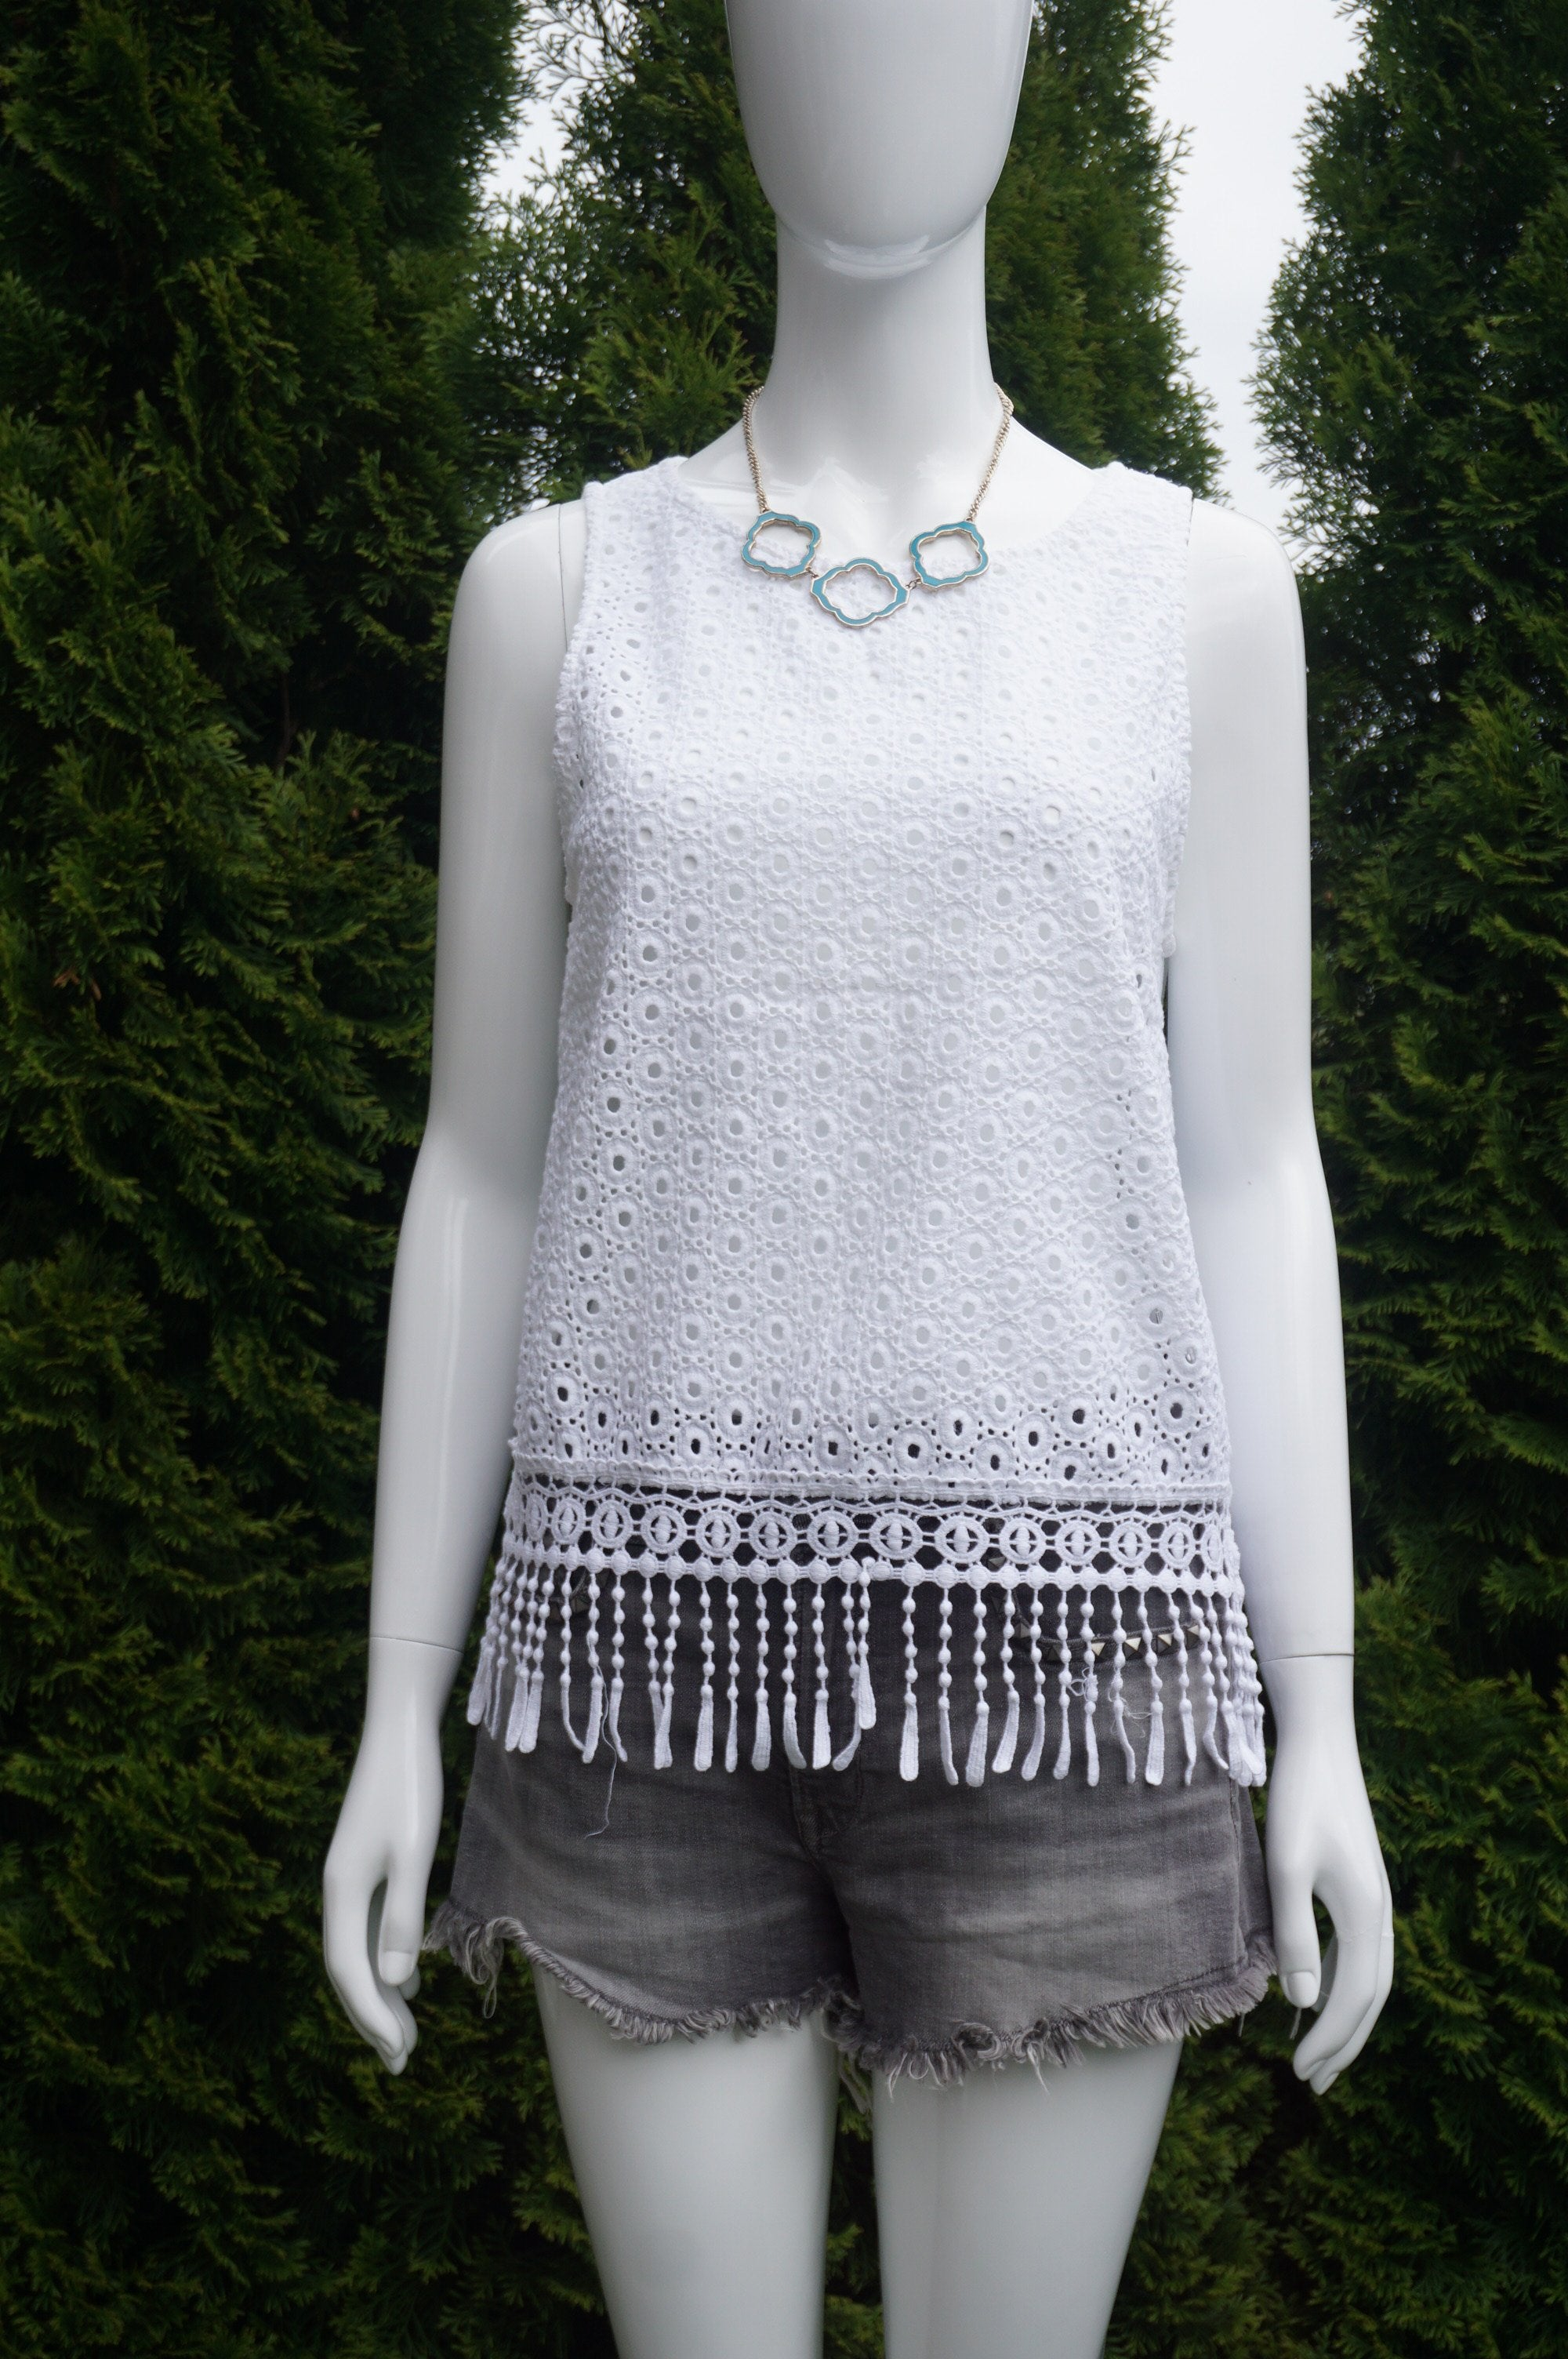 Pull & Bear White Eyelet Sleeveless Top With Fringe Details, Simple yet with all the unique characters. Perfect top for a hot summer day., White, 100% Cotton, women's Tops, women's White Tops, Pull & Bear women's Tops, tassel top, top with fringes, white eyelet top, sleeveless top, white summer top, summer sleeveless top